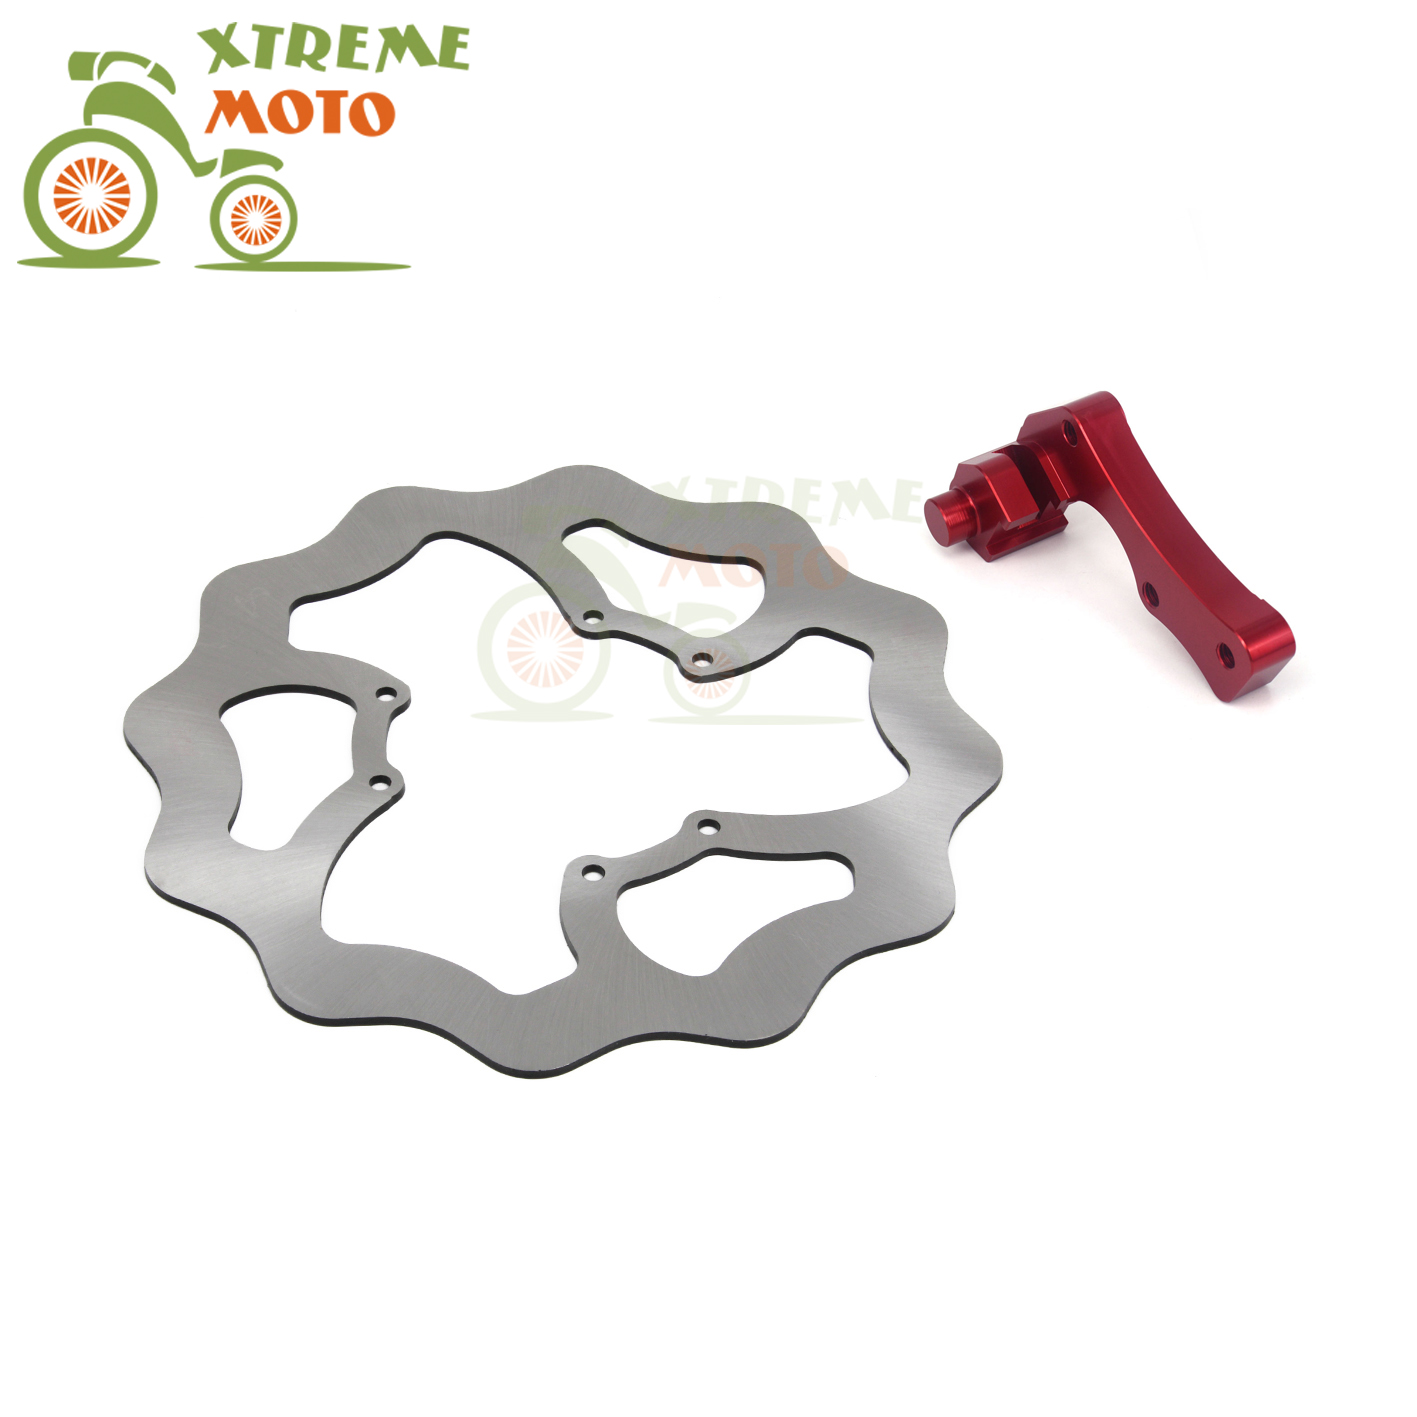 270MM Front Wavy Brake Disc + Bracket For Honda CR125E 125R 250E 250R CRE250F 250X 250R CRF250X 250R 450R 450X Motocross Enduro 270mm front brake disc rotor for cr 125 250 500 crf 250r 250x 450x 450r 230f motocross supermoto enduro dirt bike off road